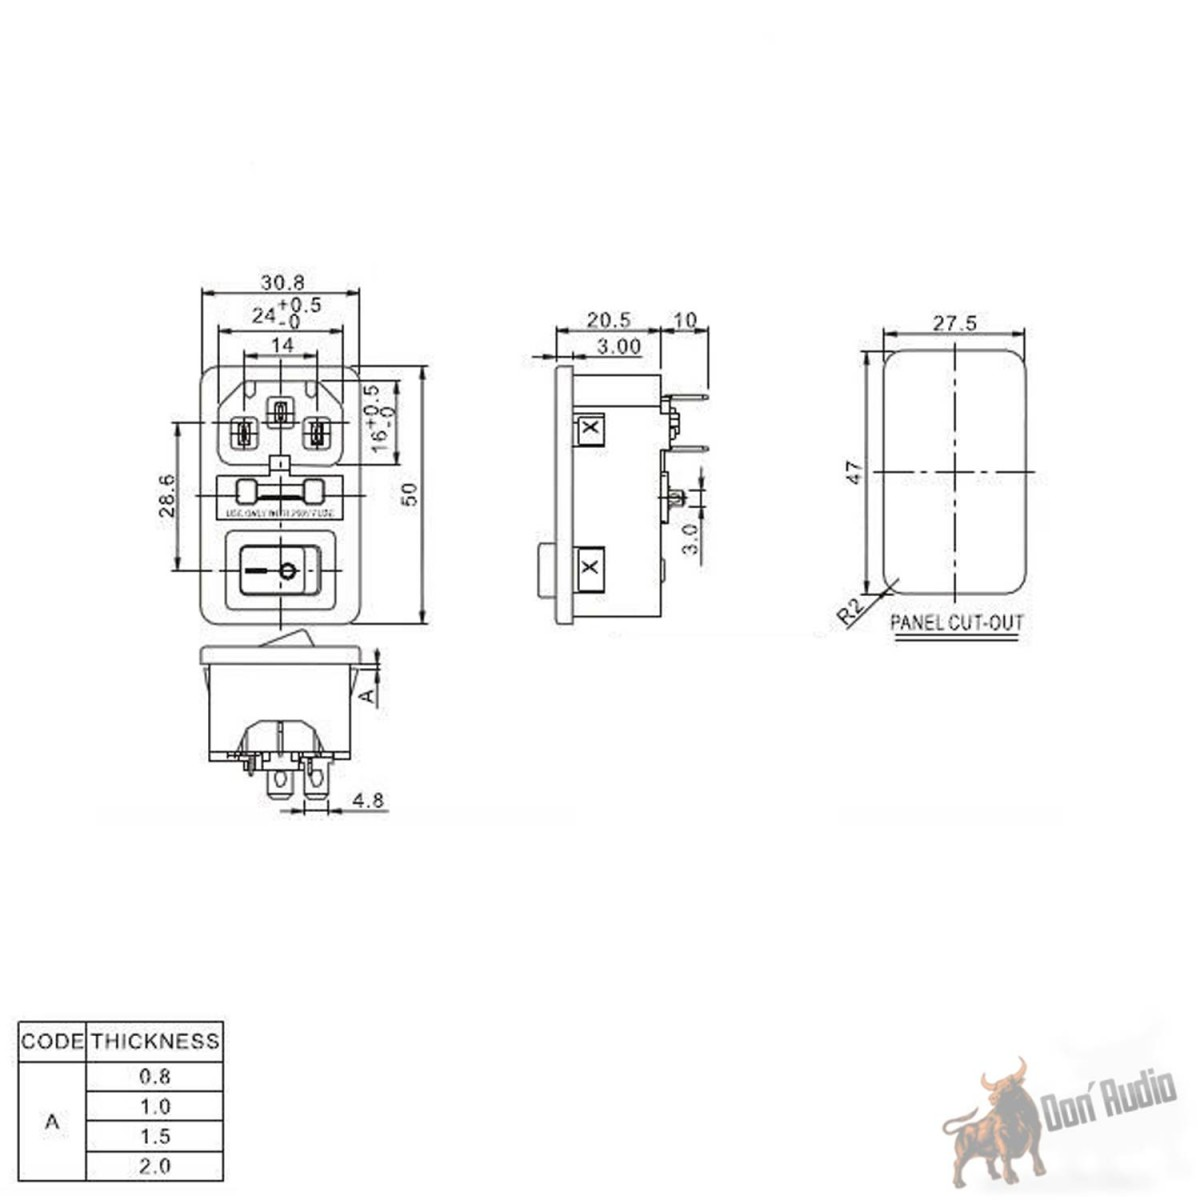 Iec Fuse With Switch Wiring Diagram L6 20 Power Jack Chassis Mount 10a Holder Dfs Connector